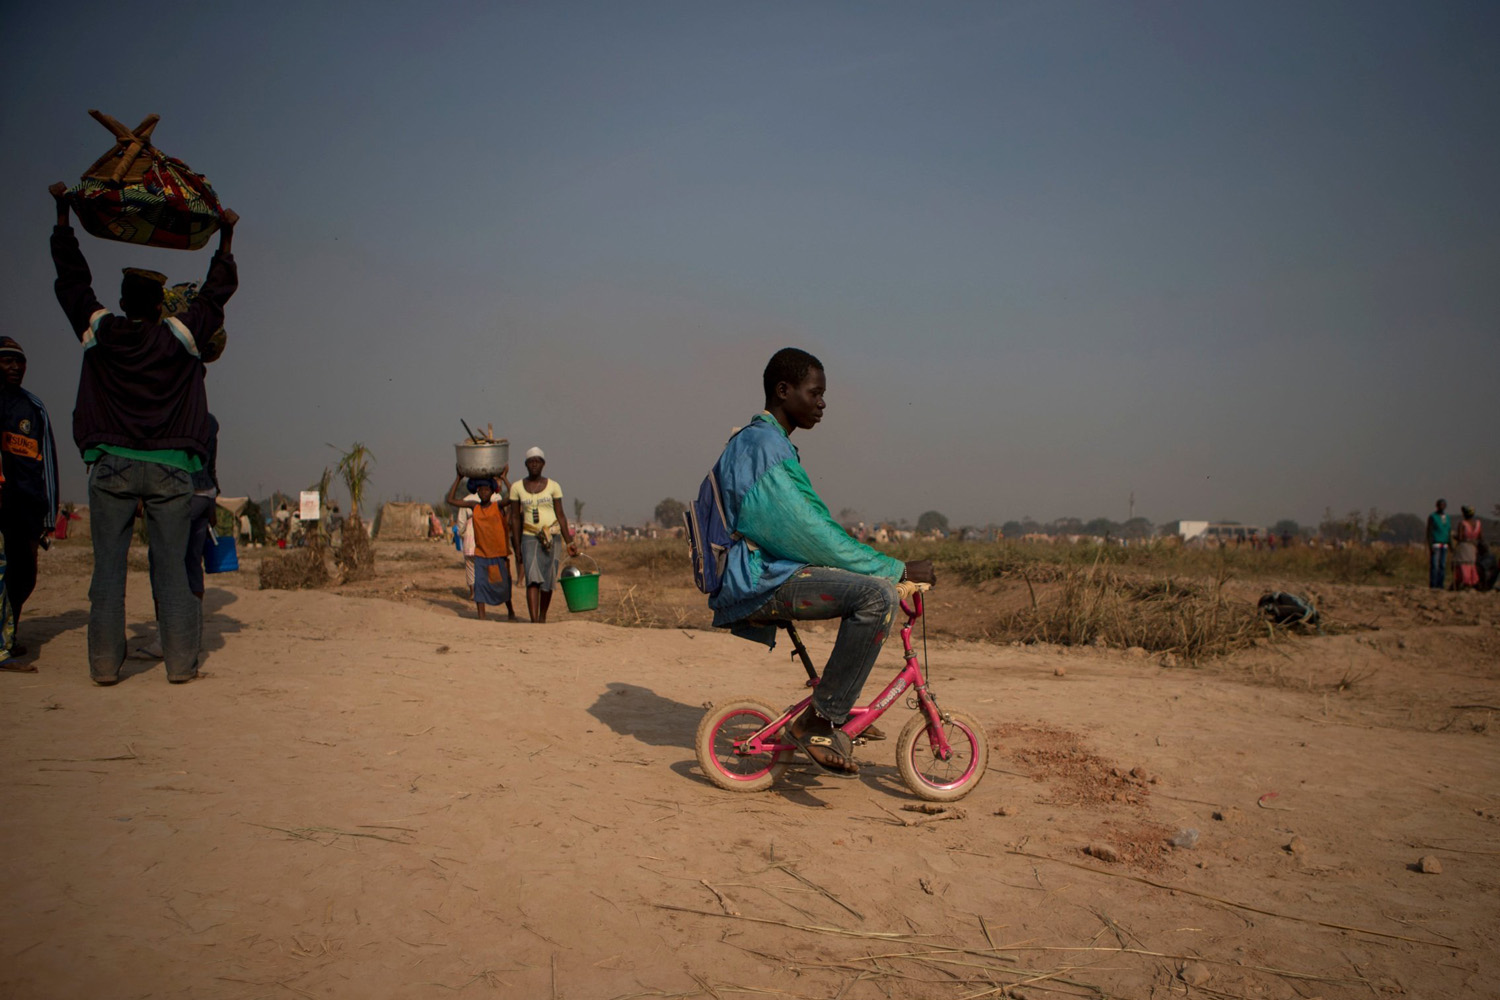 Jan. 8, 2014. A boy rides a child's bike through a new settlement area of an informal camp housing an estimated 100,000 displaced people, at Mpoko Airport in Bangui, Central African Republic.